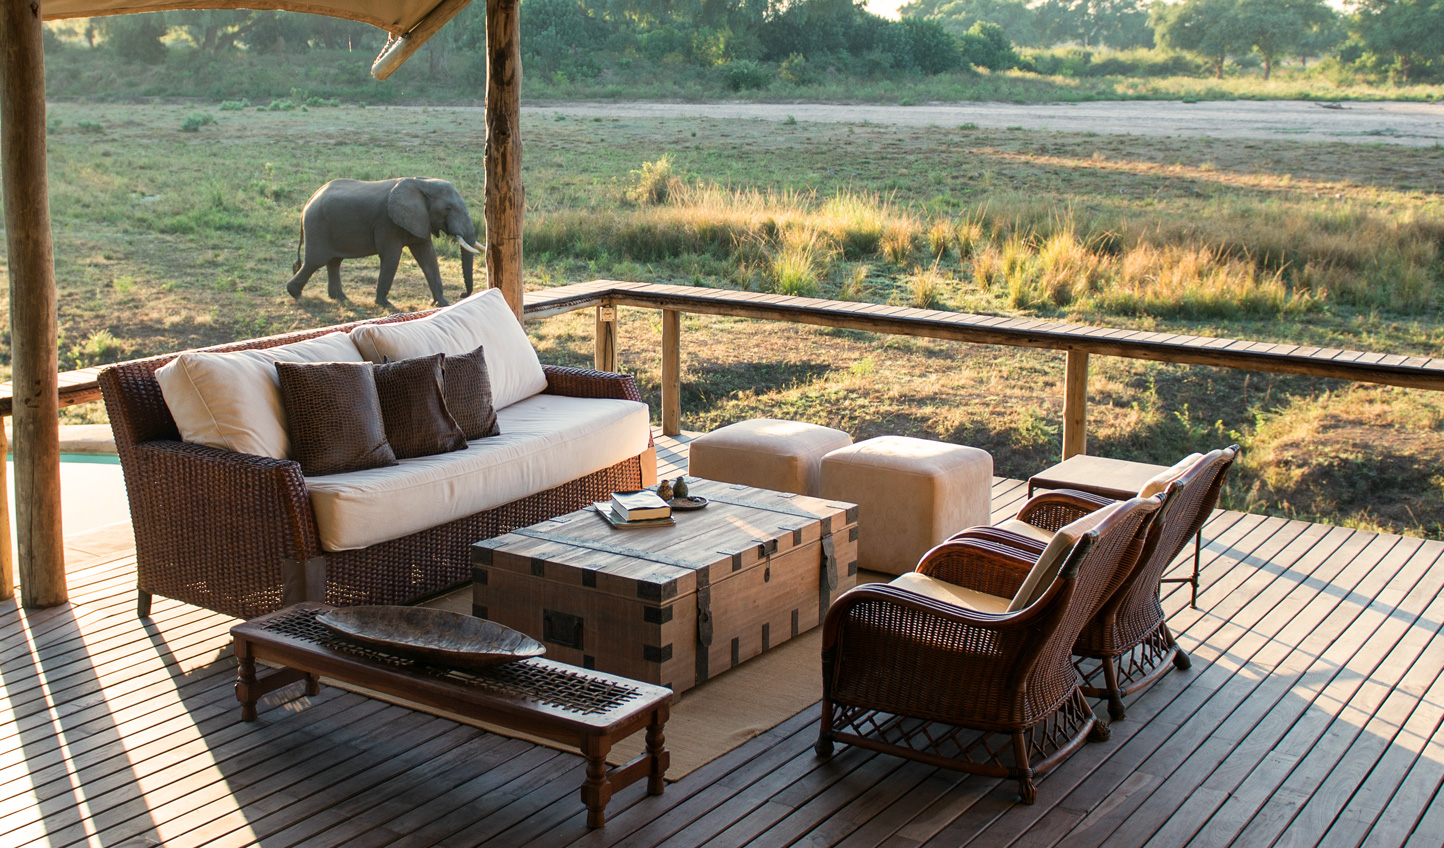 See game animals wander right past you at Anabezi